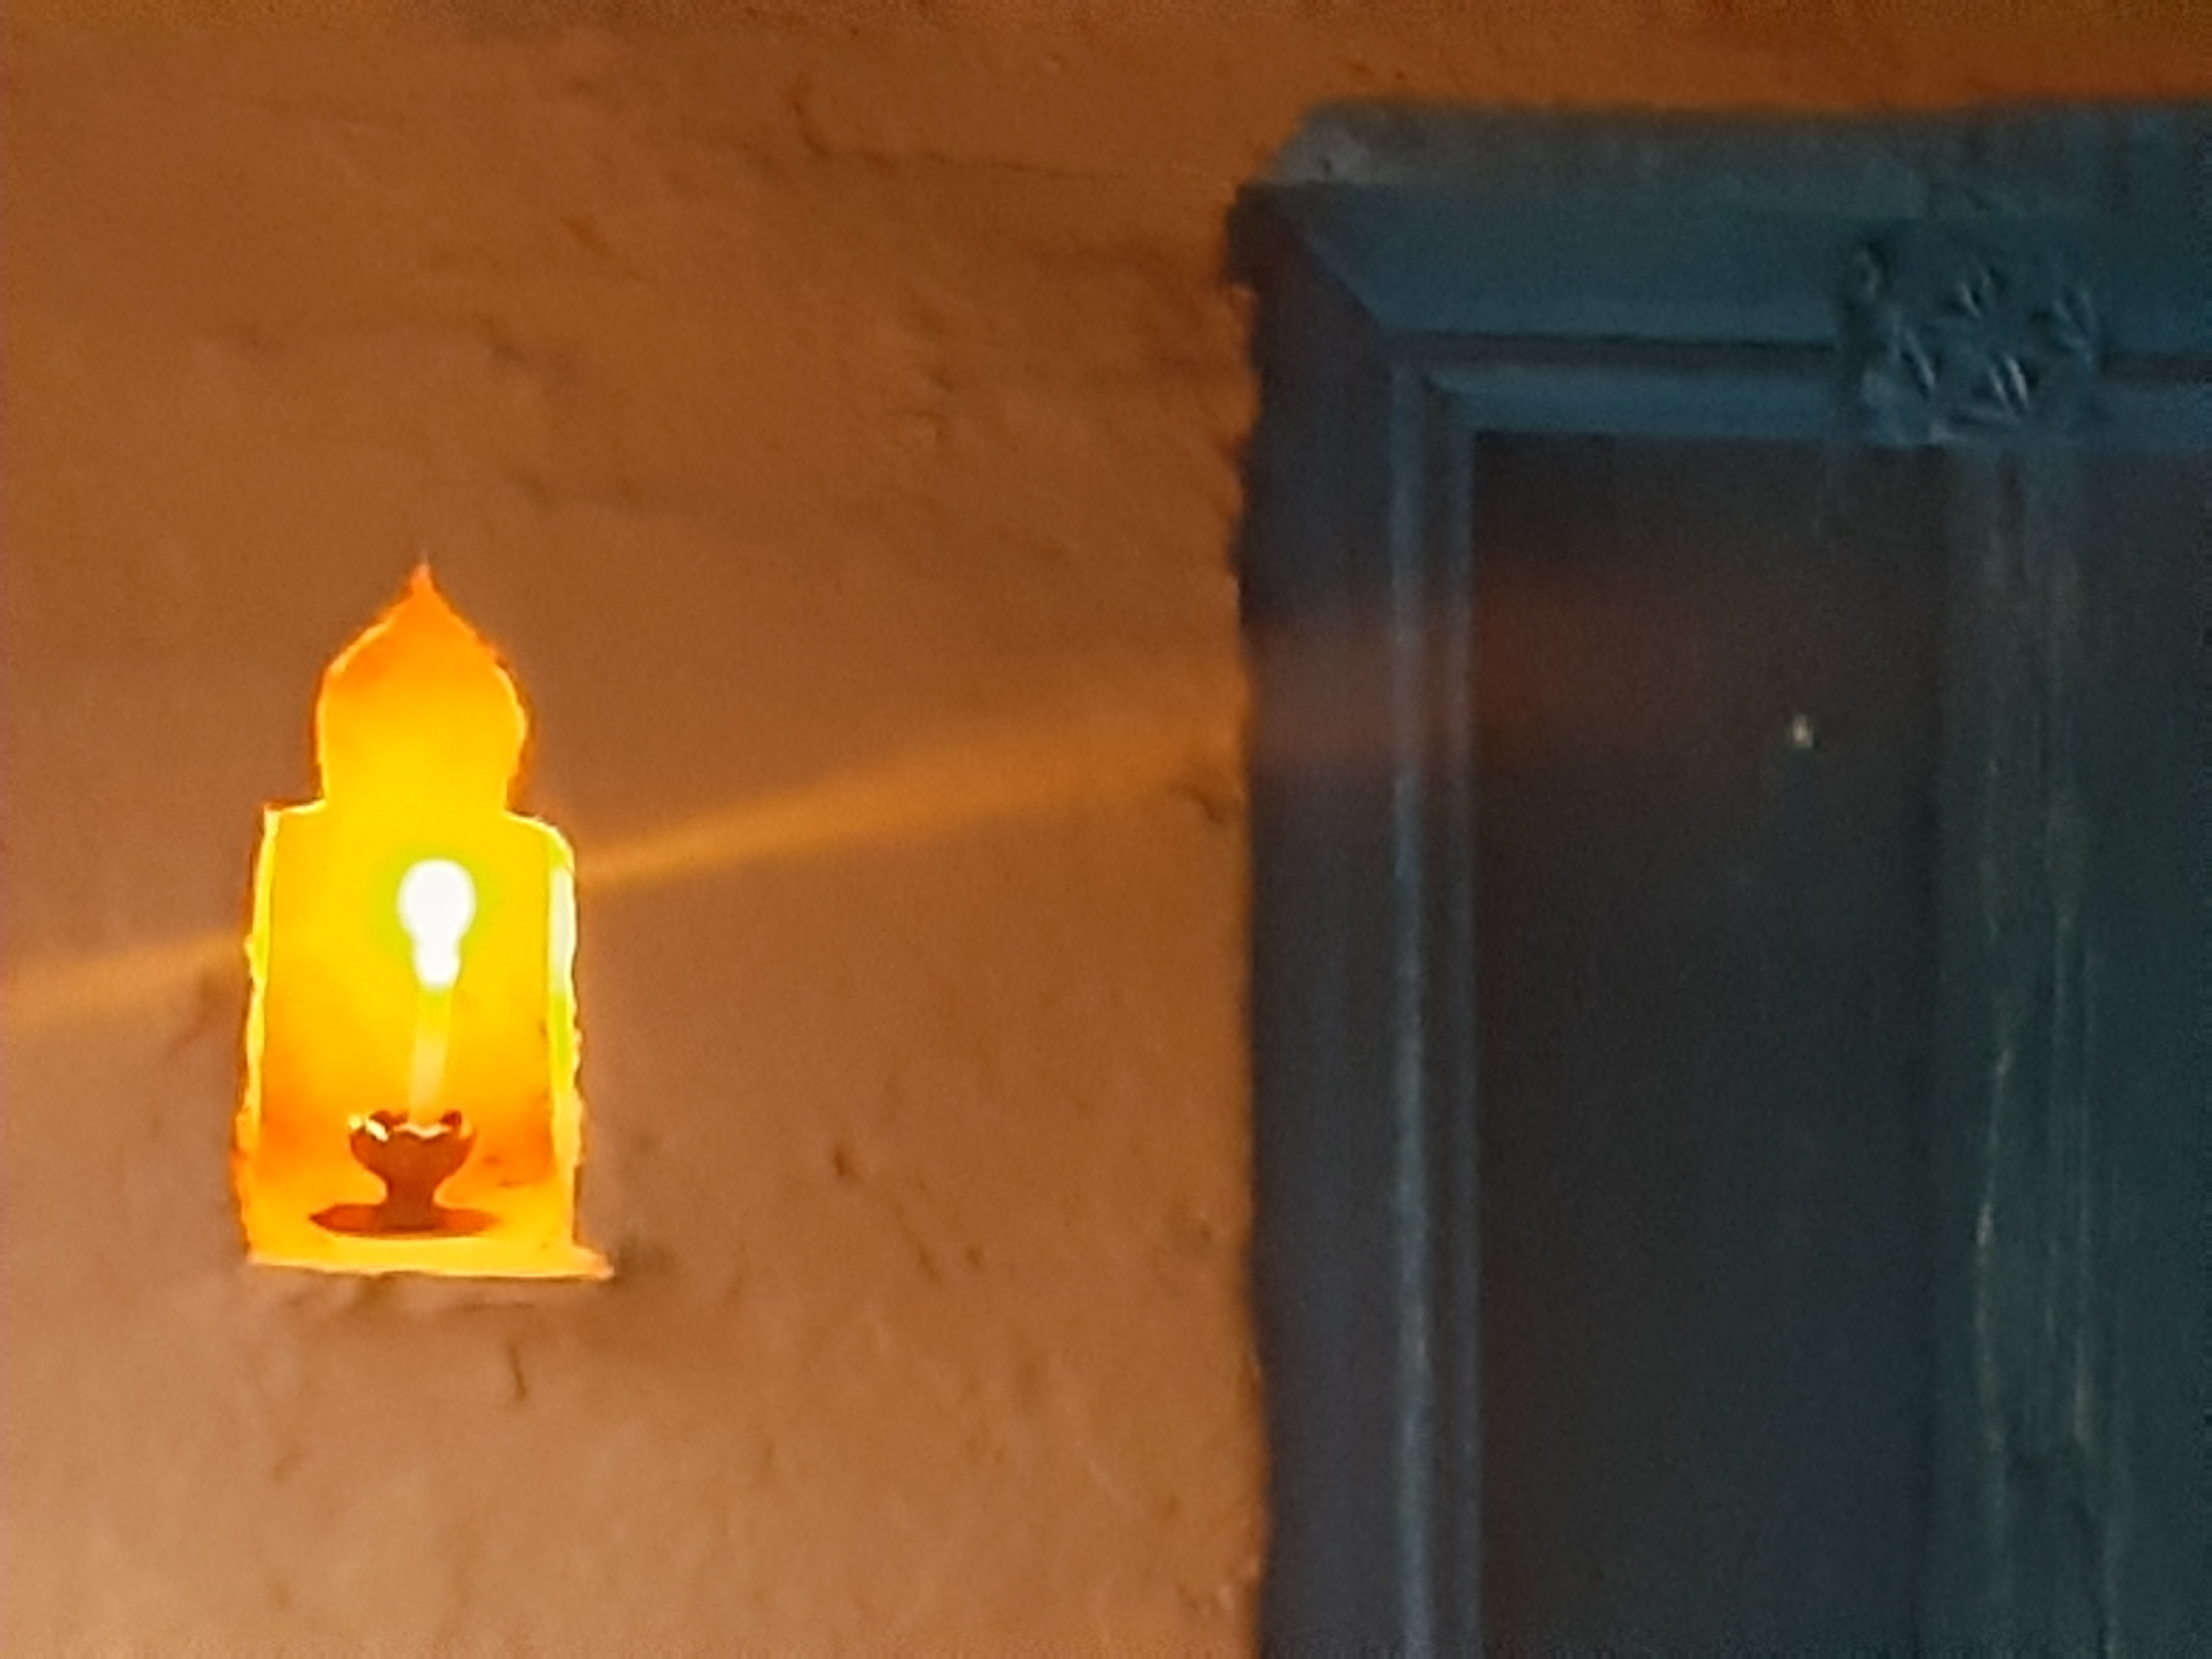 Night lamp outside the house